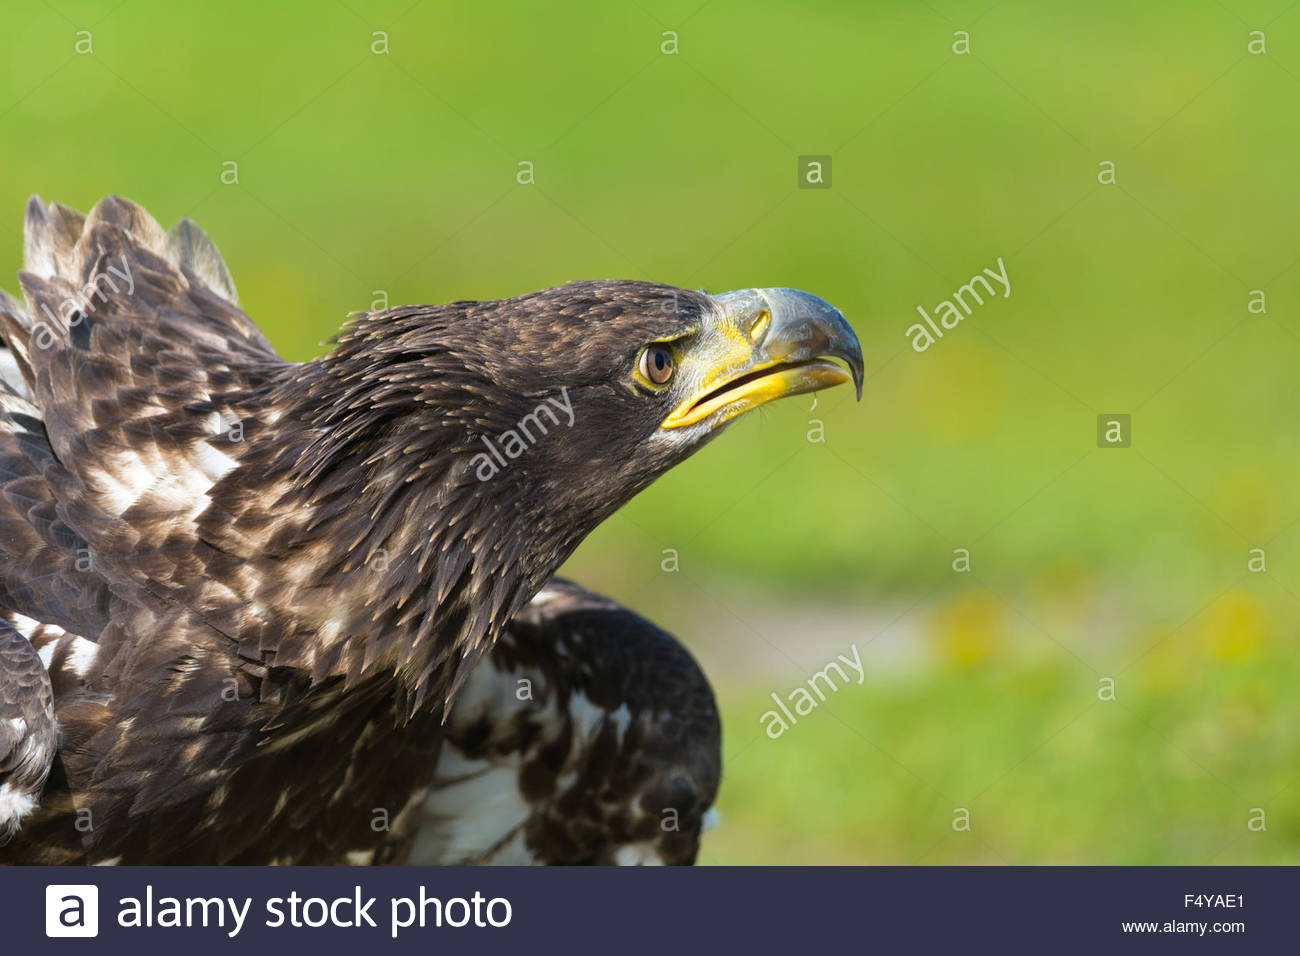 Close up portrait of a fierce looking Golden Eagle set off by a naturally blurred green background. - Stock Image